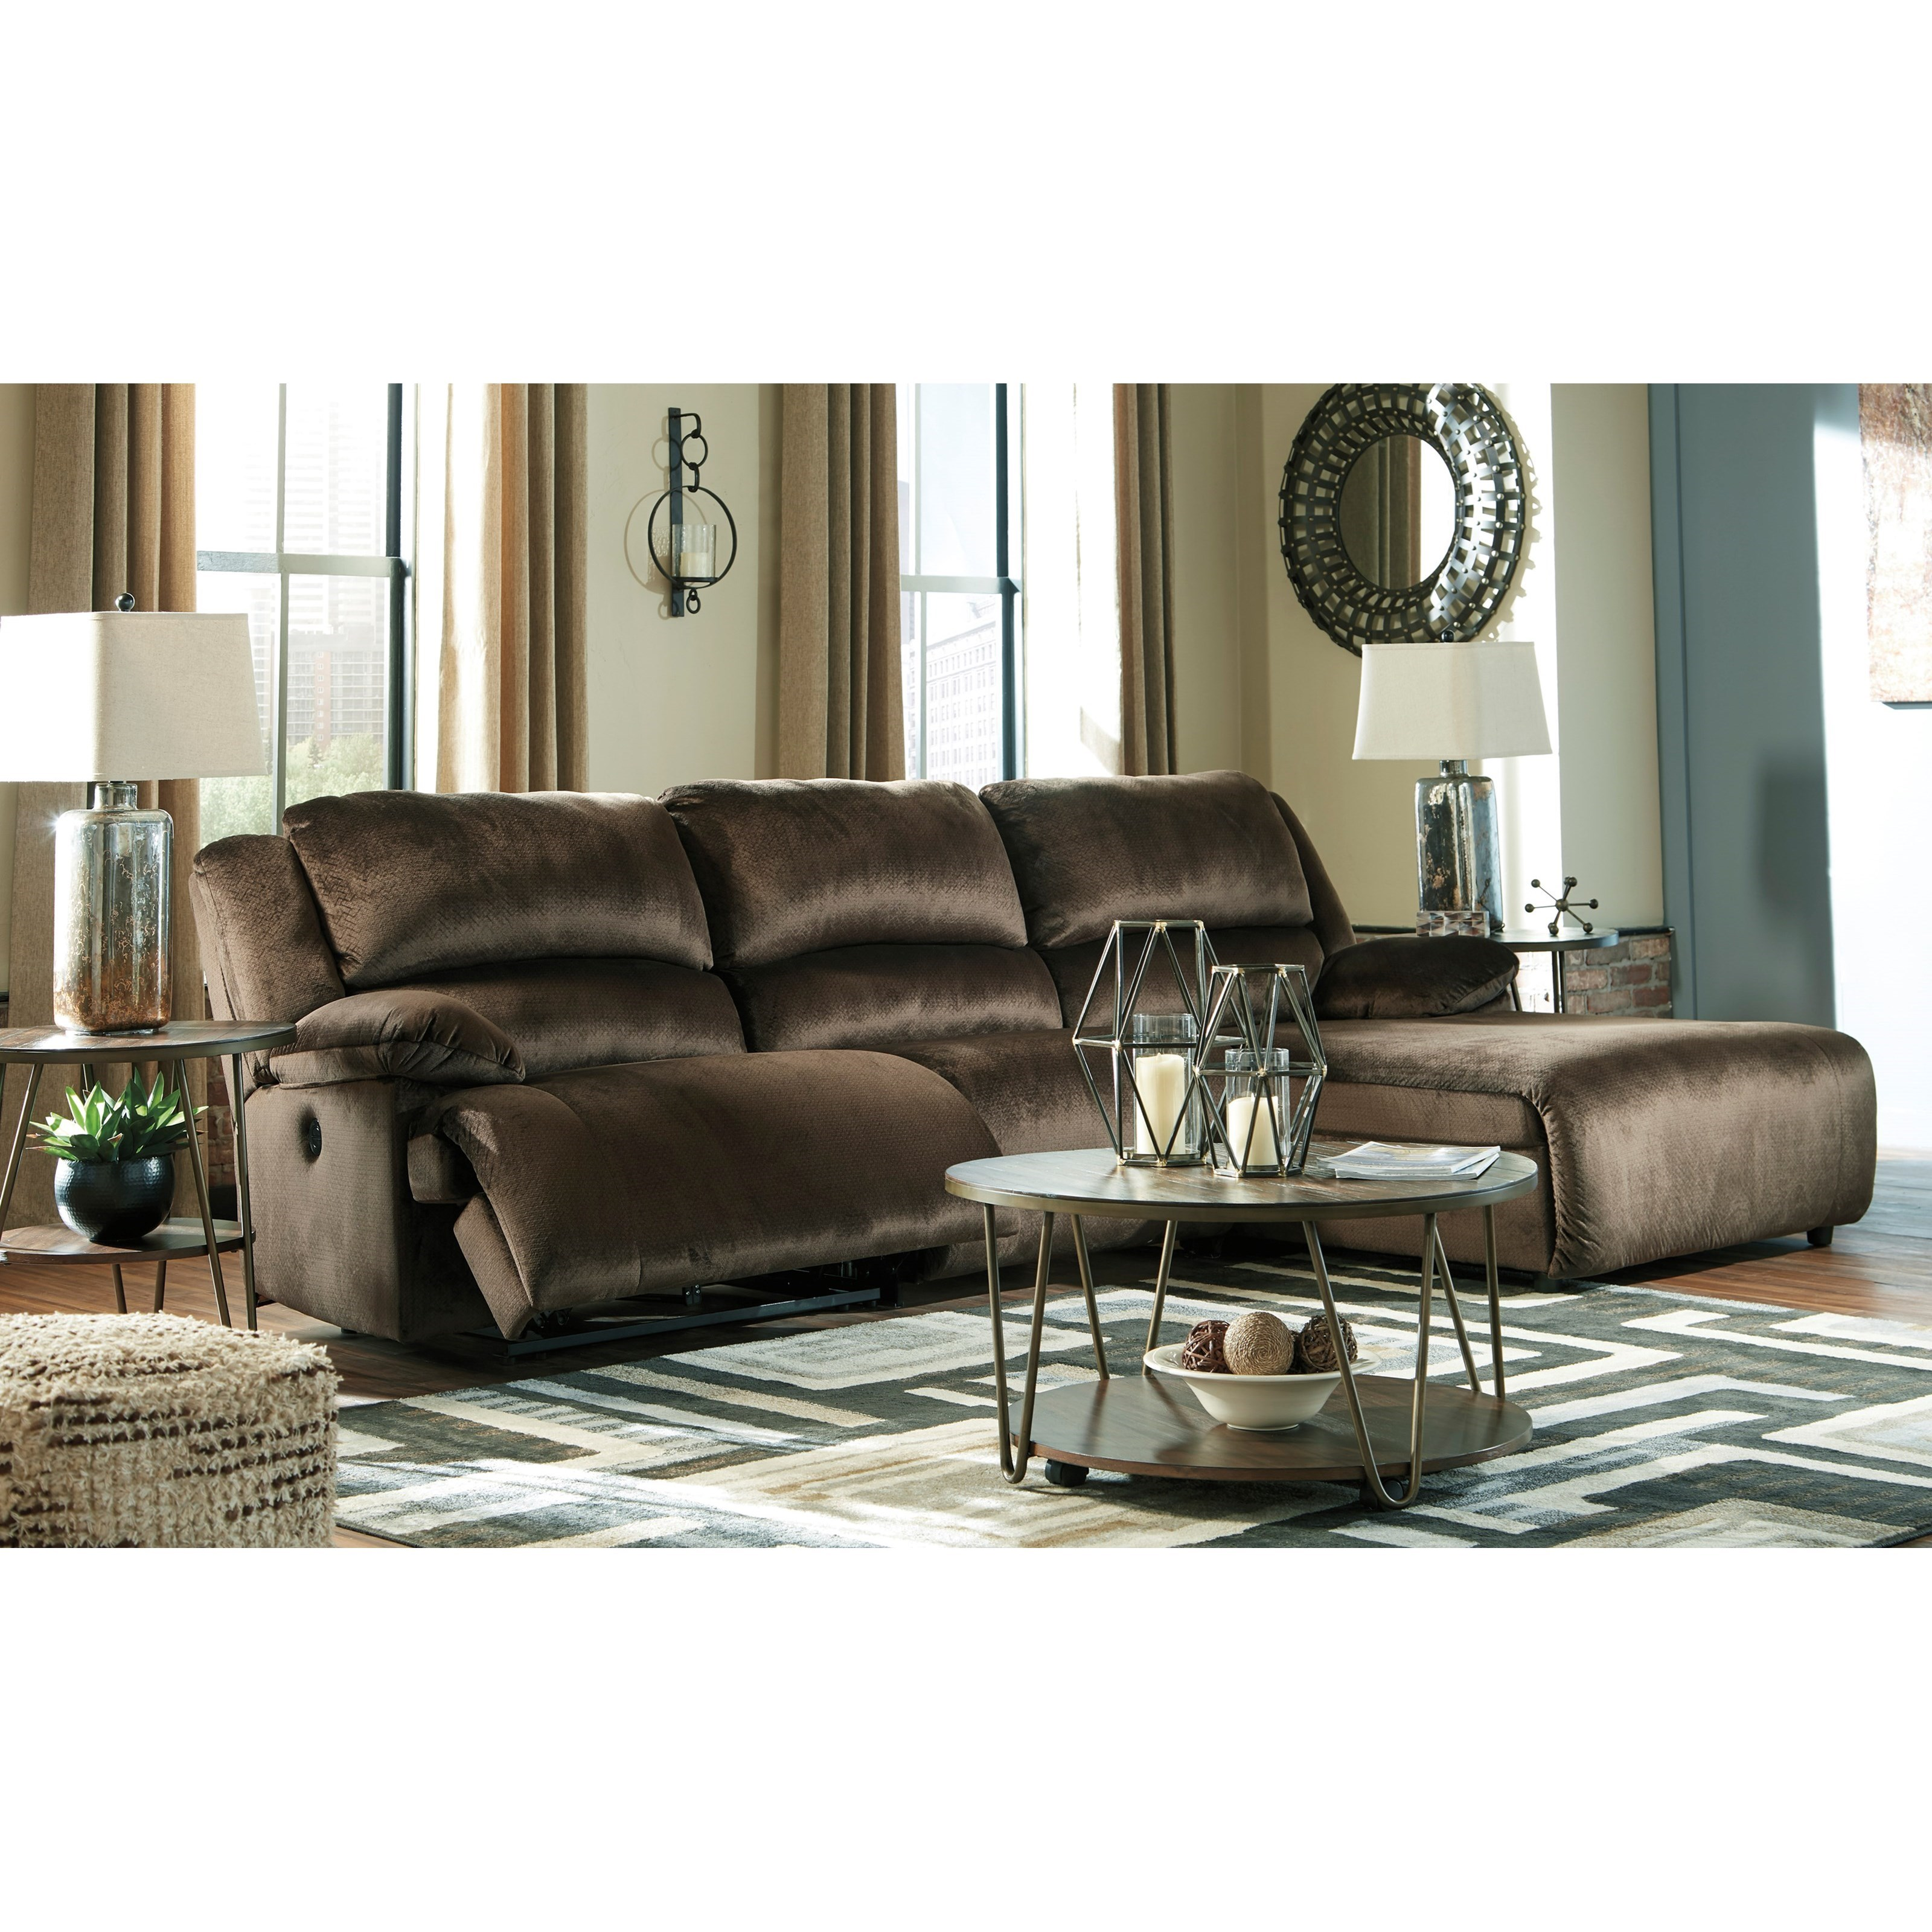 Power Reclining Sectional With Right Press Back Chaise By: Reclining Sectional With Pressback Chaise By Signature